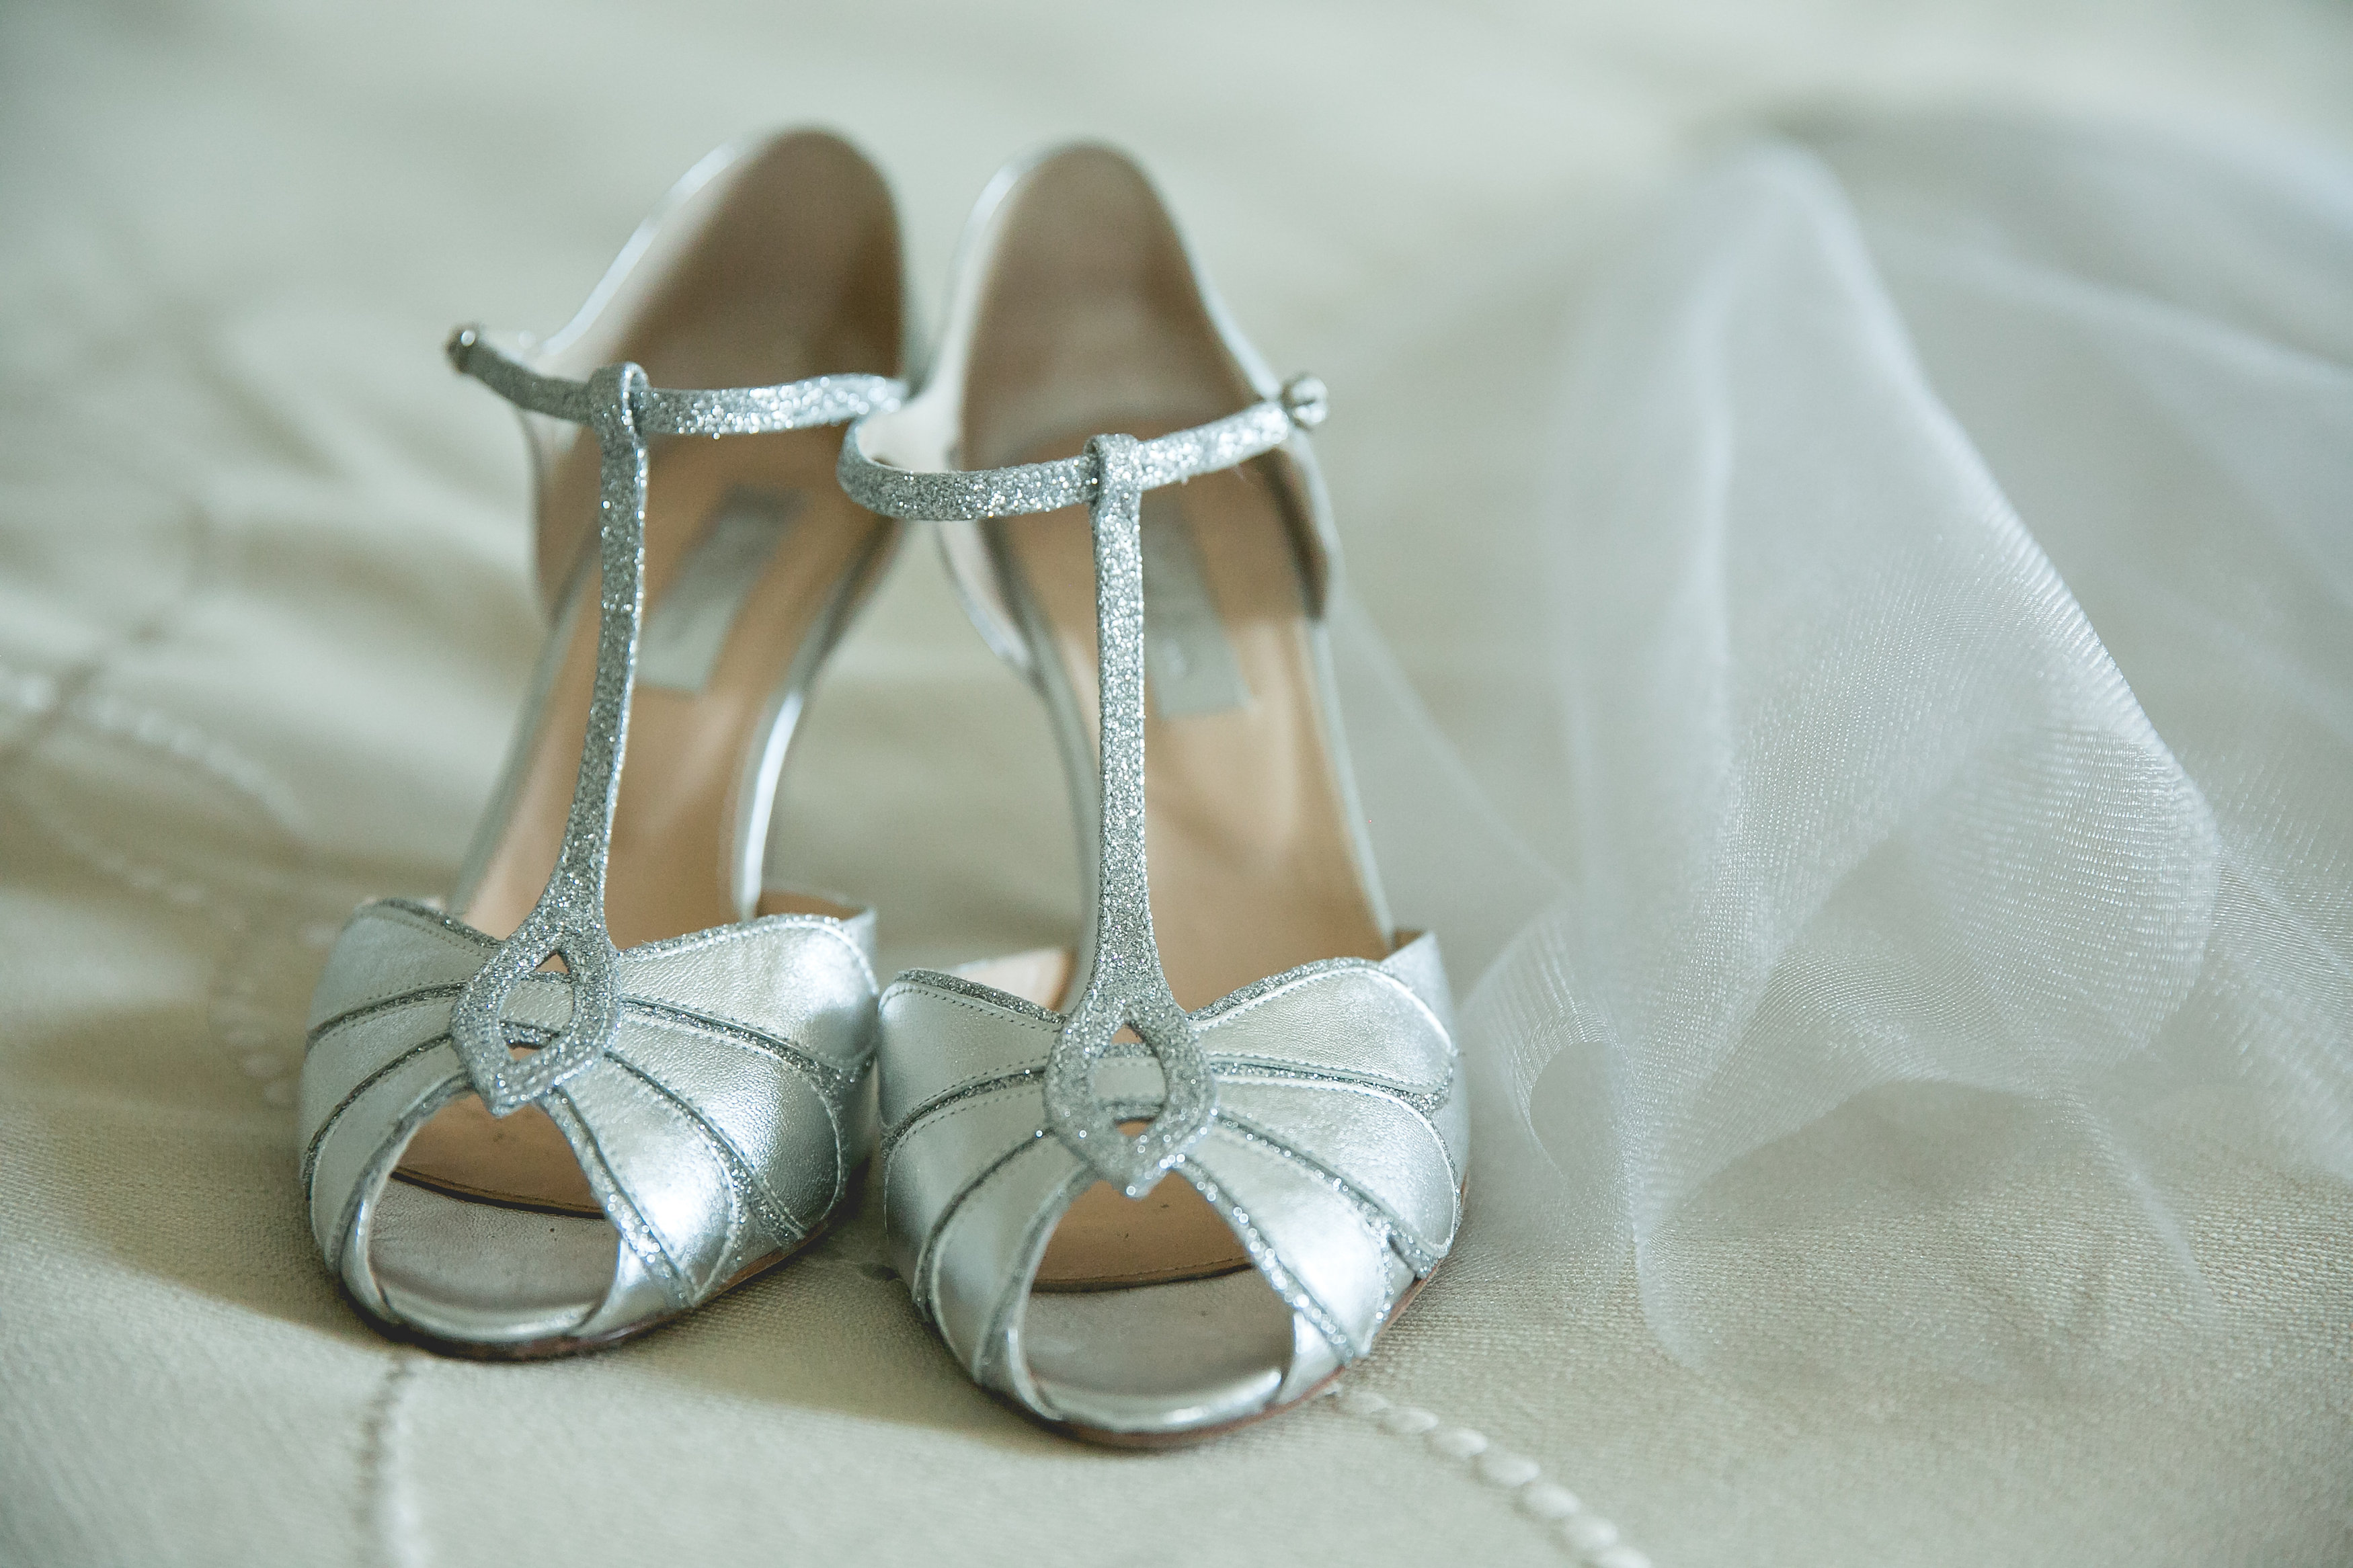 silver-sparkle-jewish-wedding-nashville-shehewe-photography-02